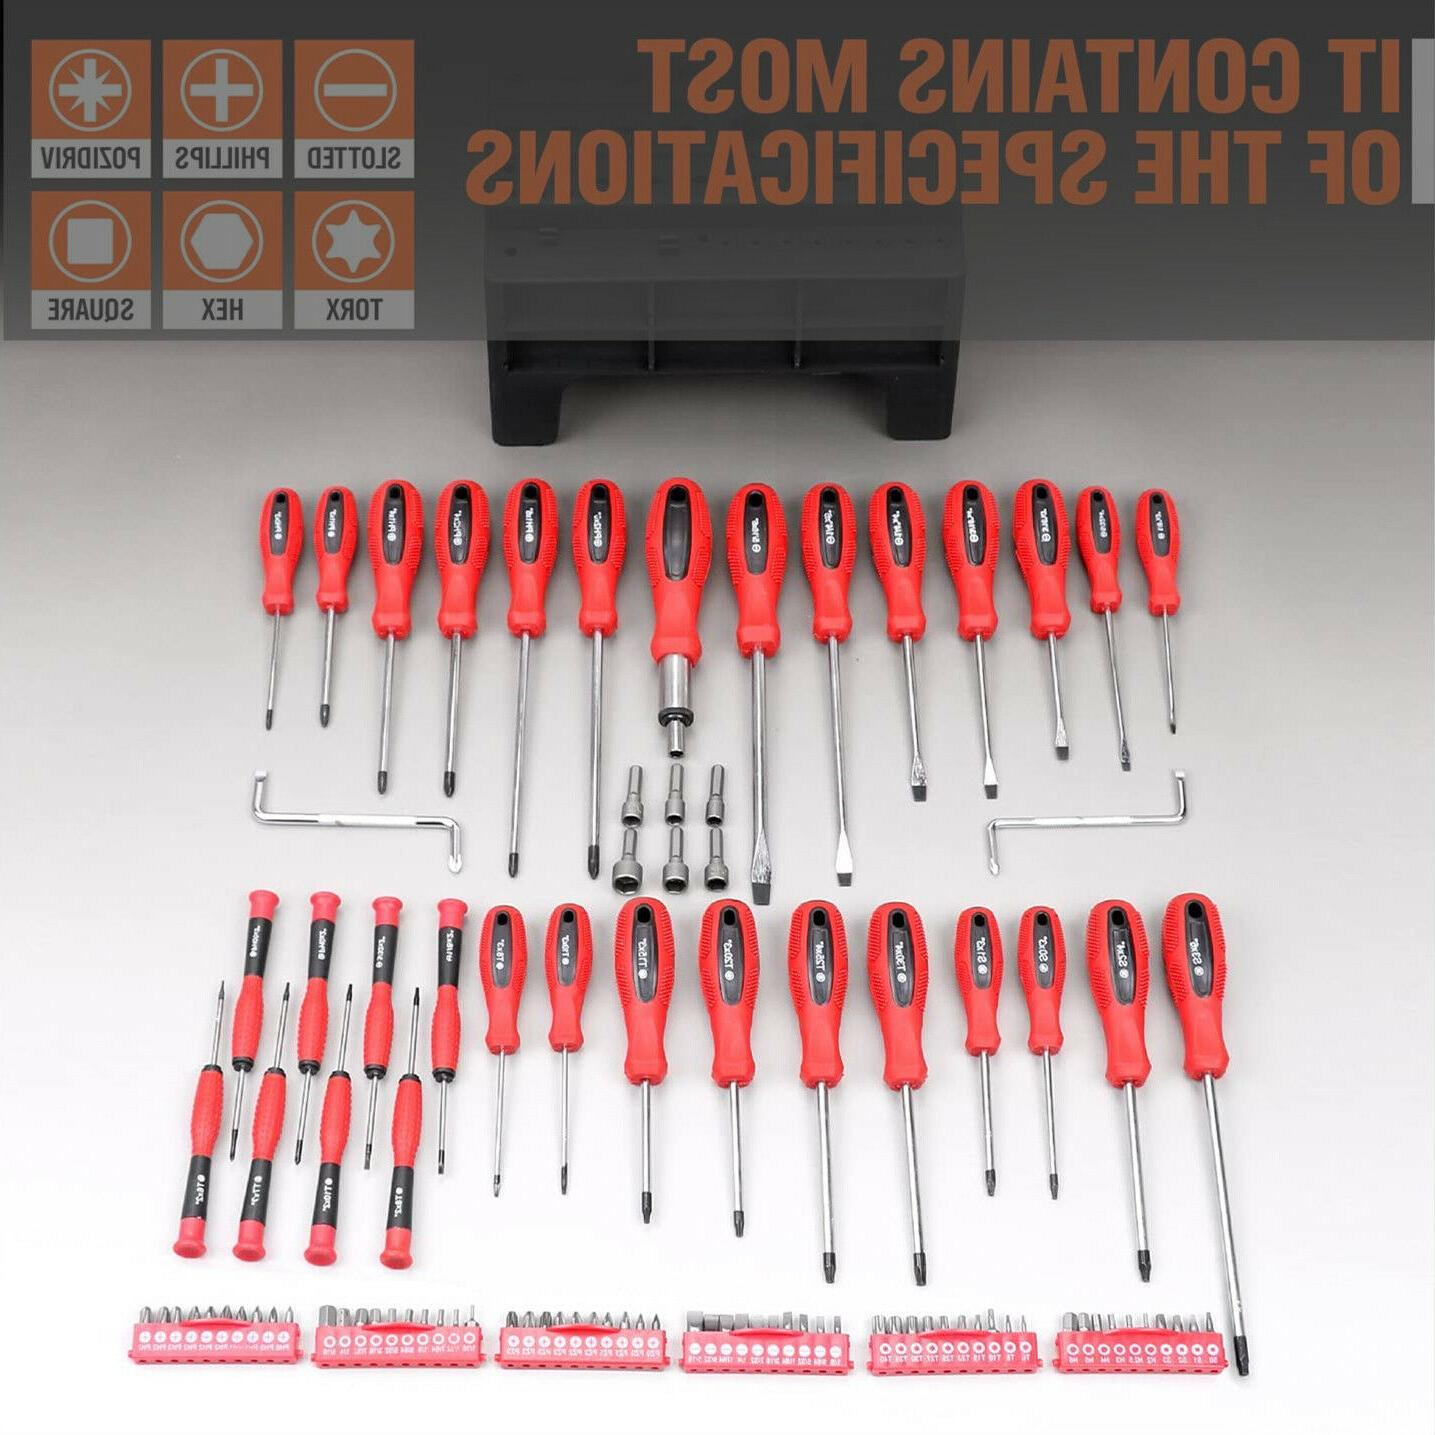 100-Piece with Tools for